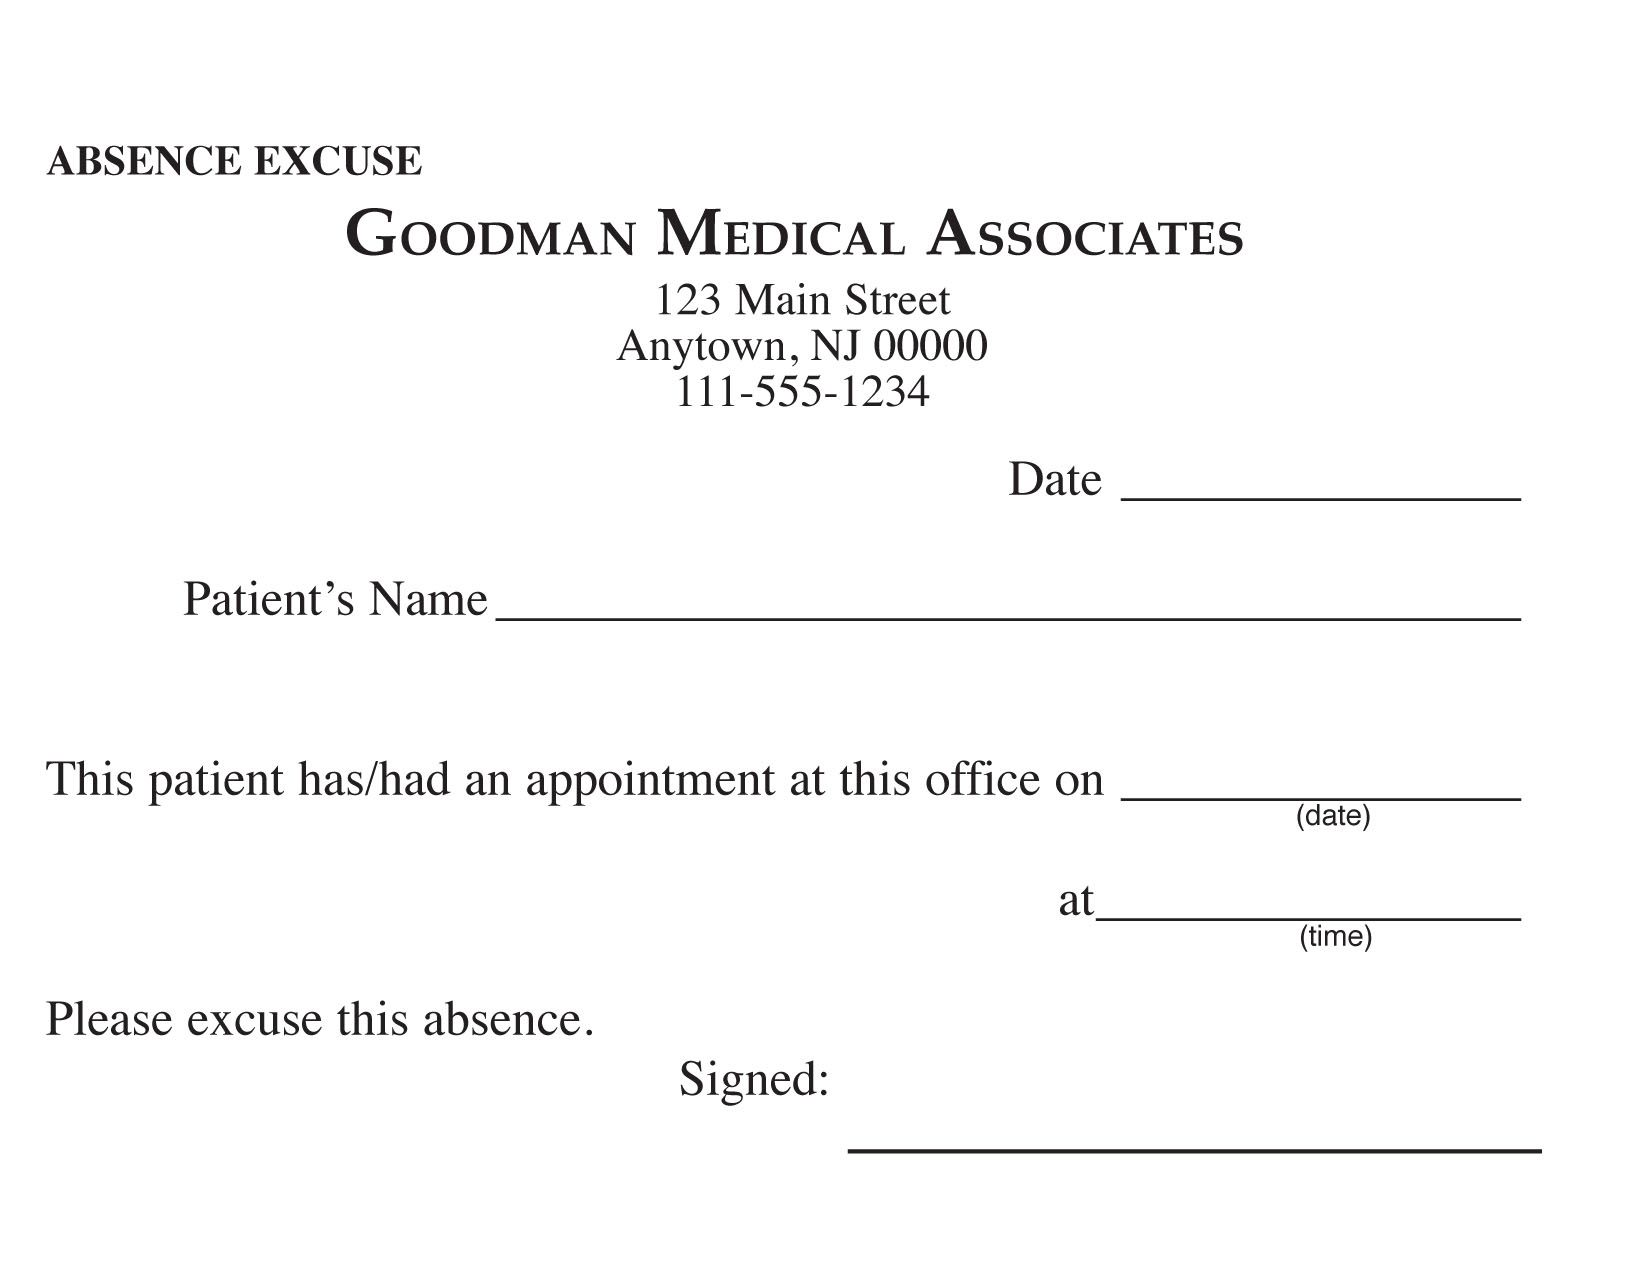 blank printable doctor excuse form